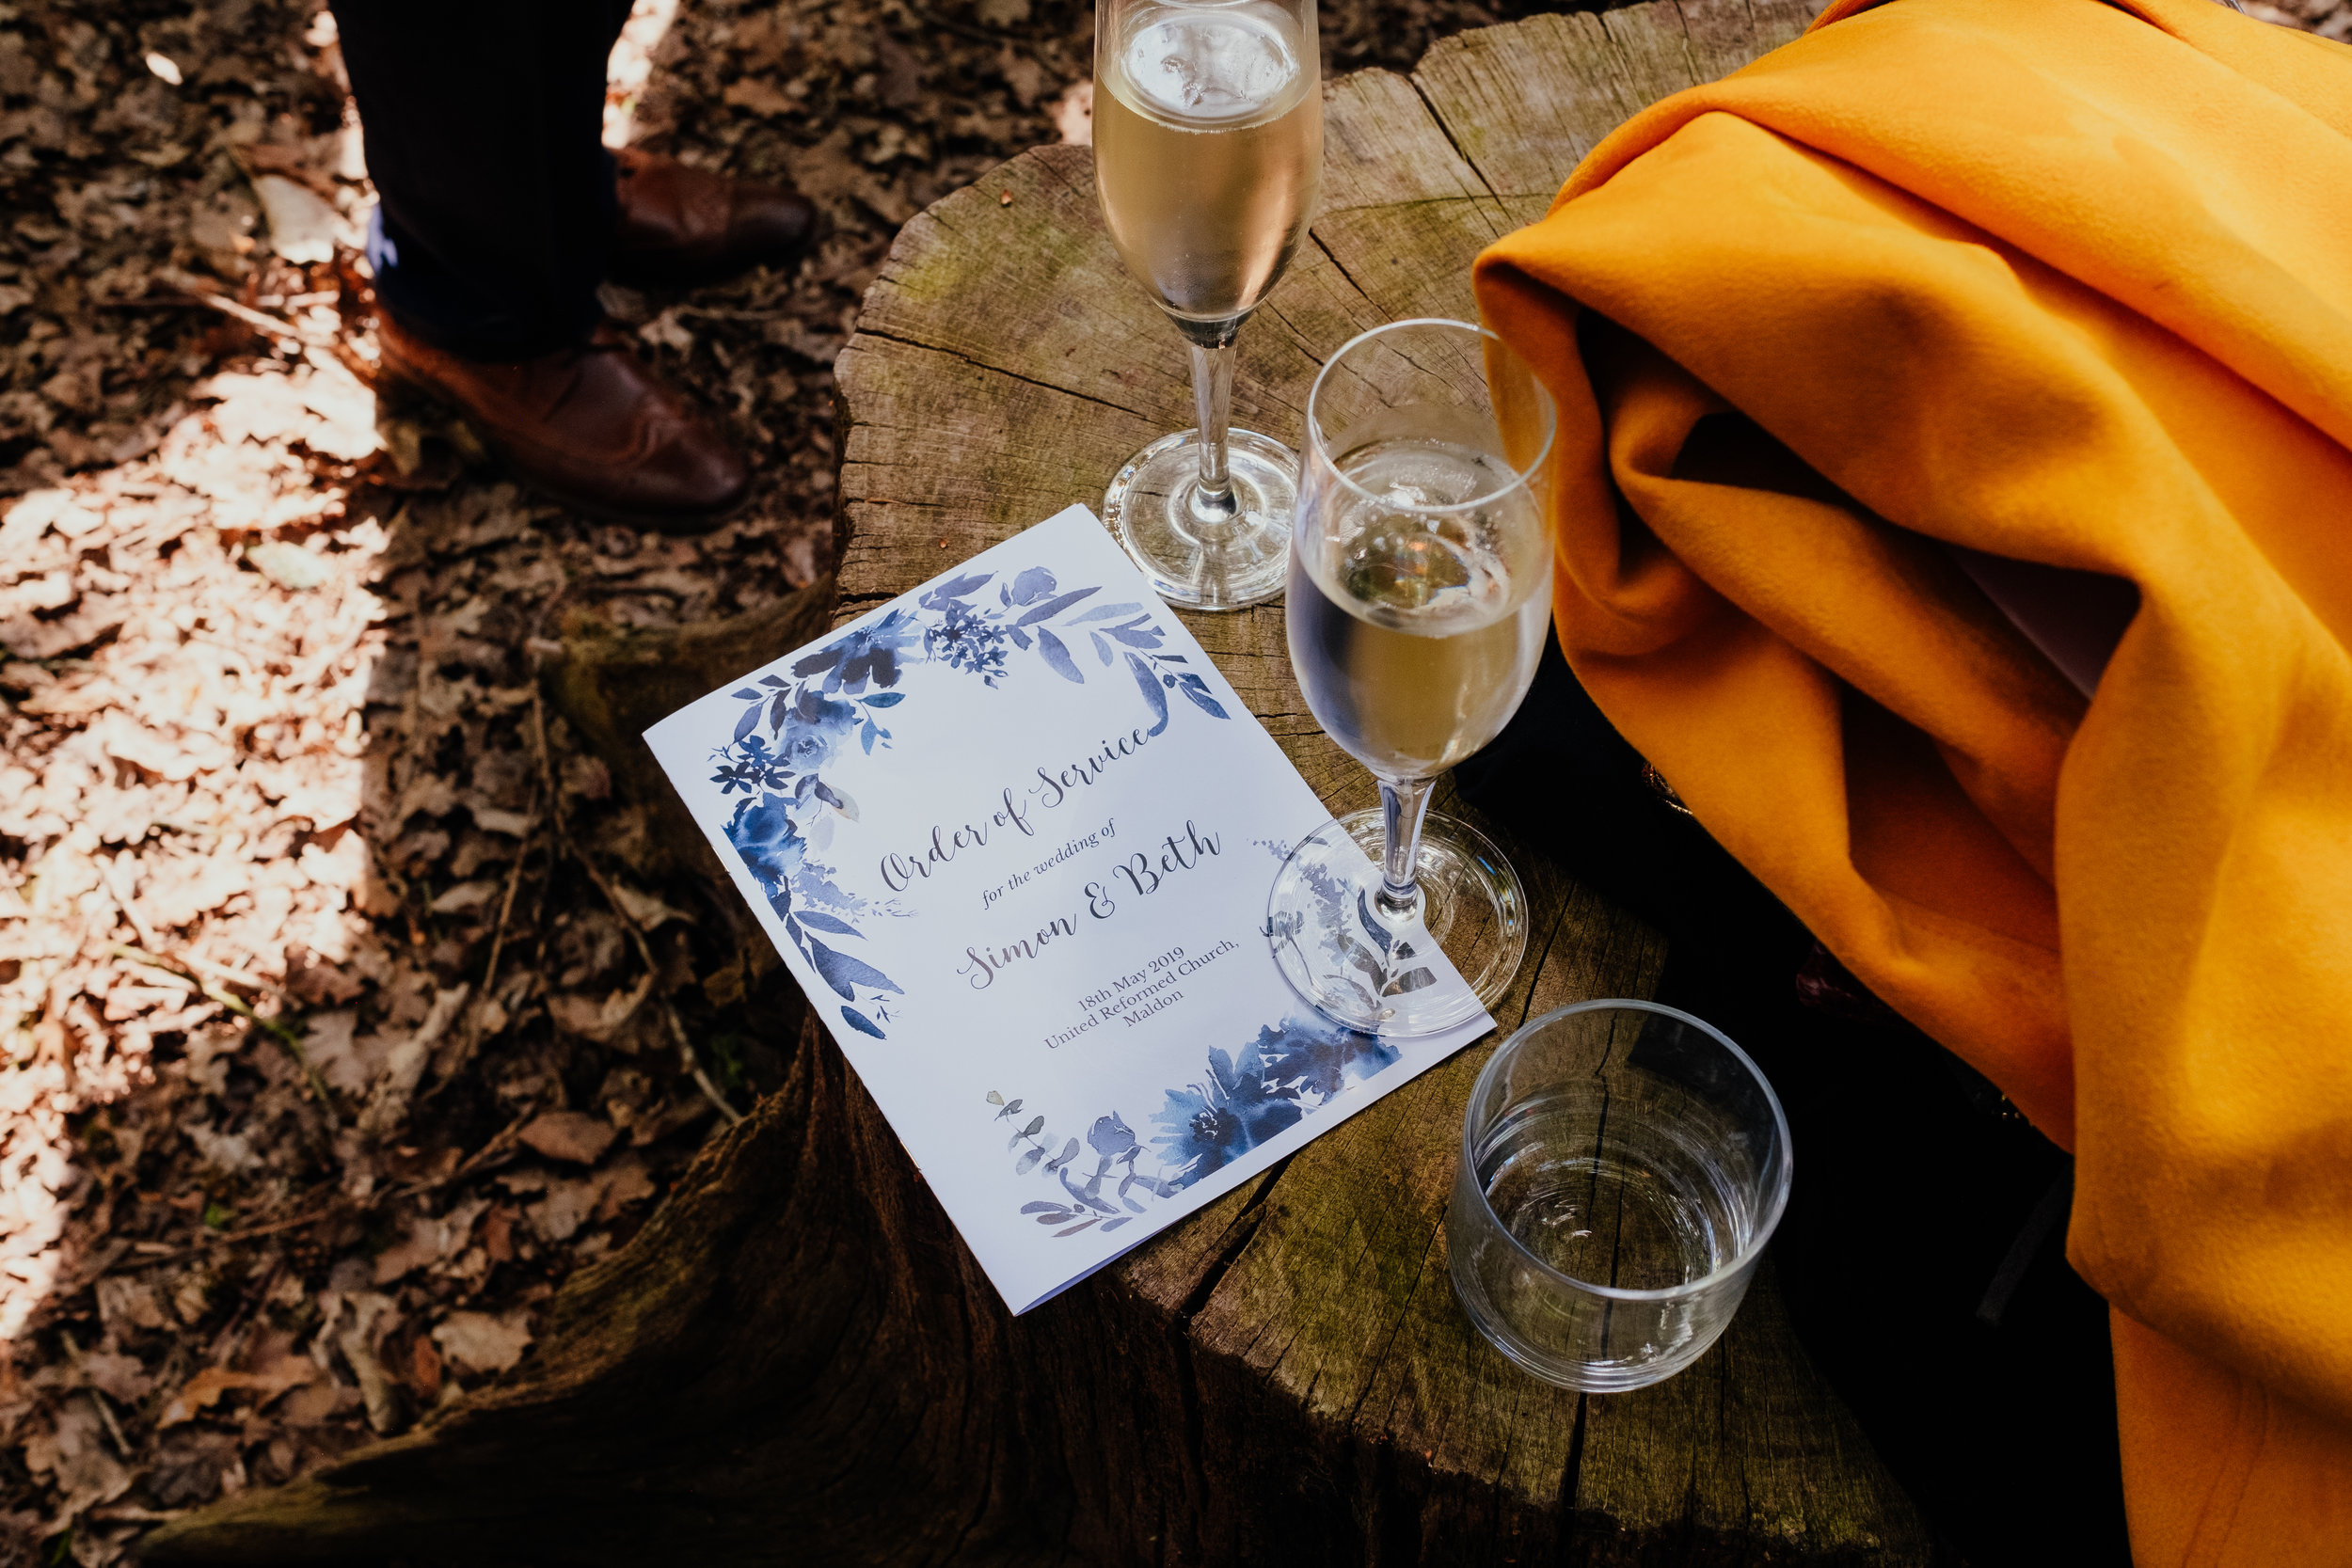 Floral Wedding Order of Service resting on tree trunk next to yellow coat and glasses of champagne